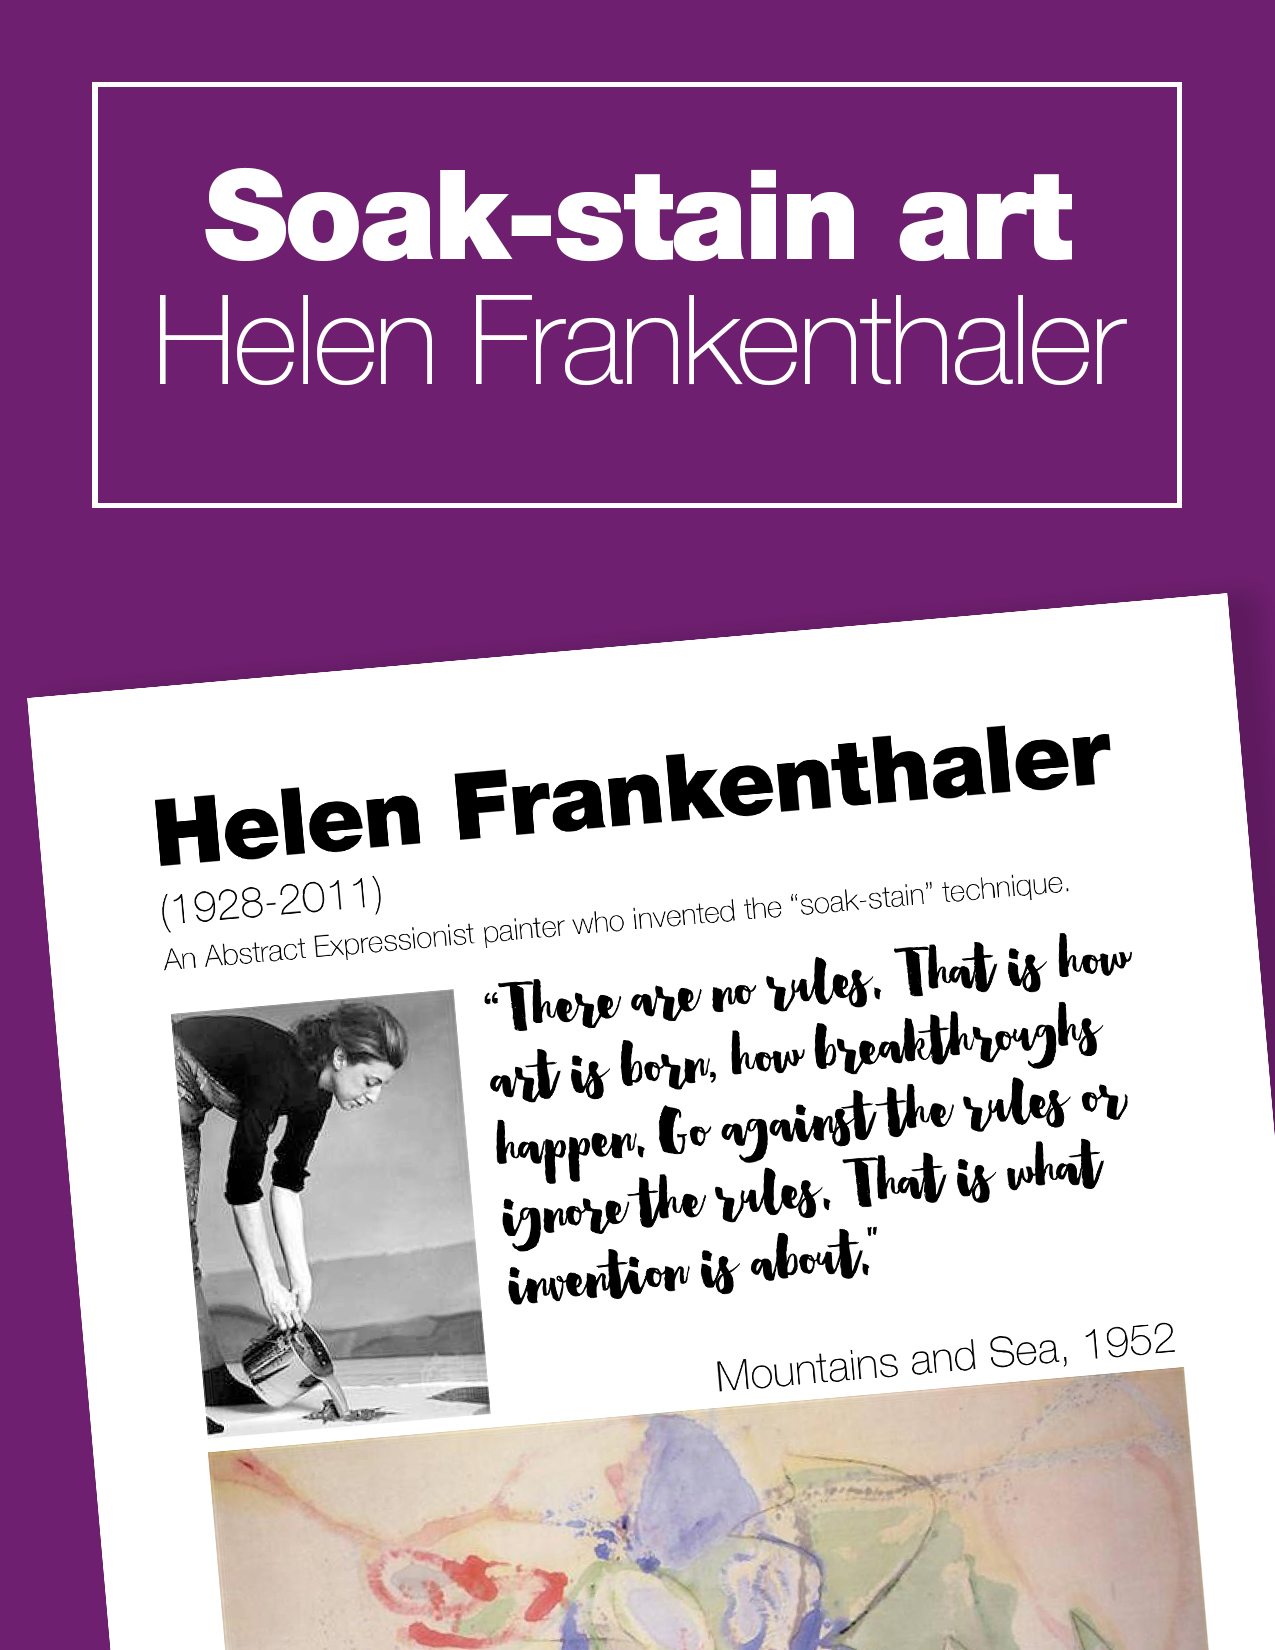 Famous artists for kids. Learn about Helen Frankenthaler, and try out her soak-stain painting technique with your kids.